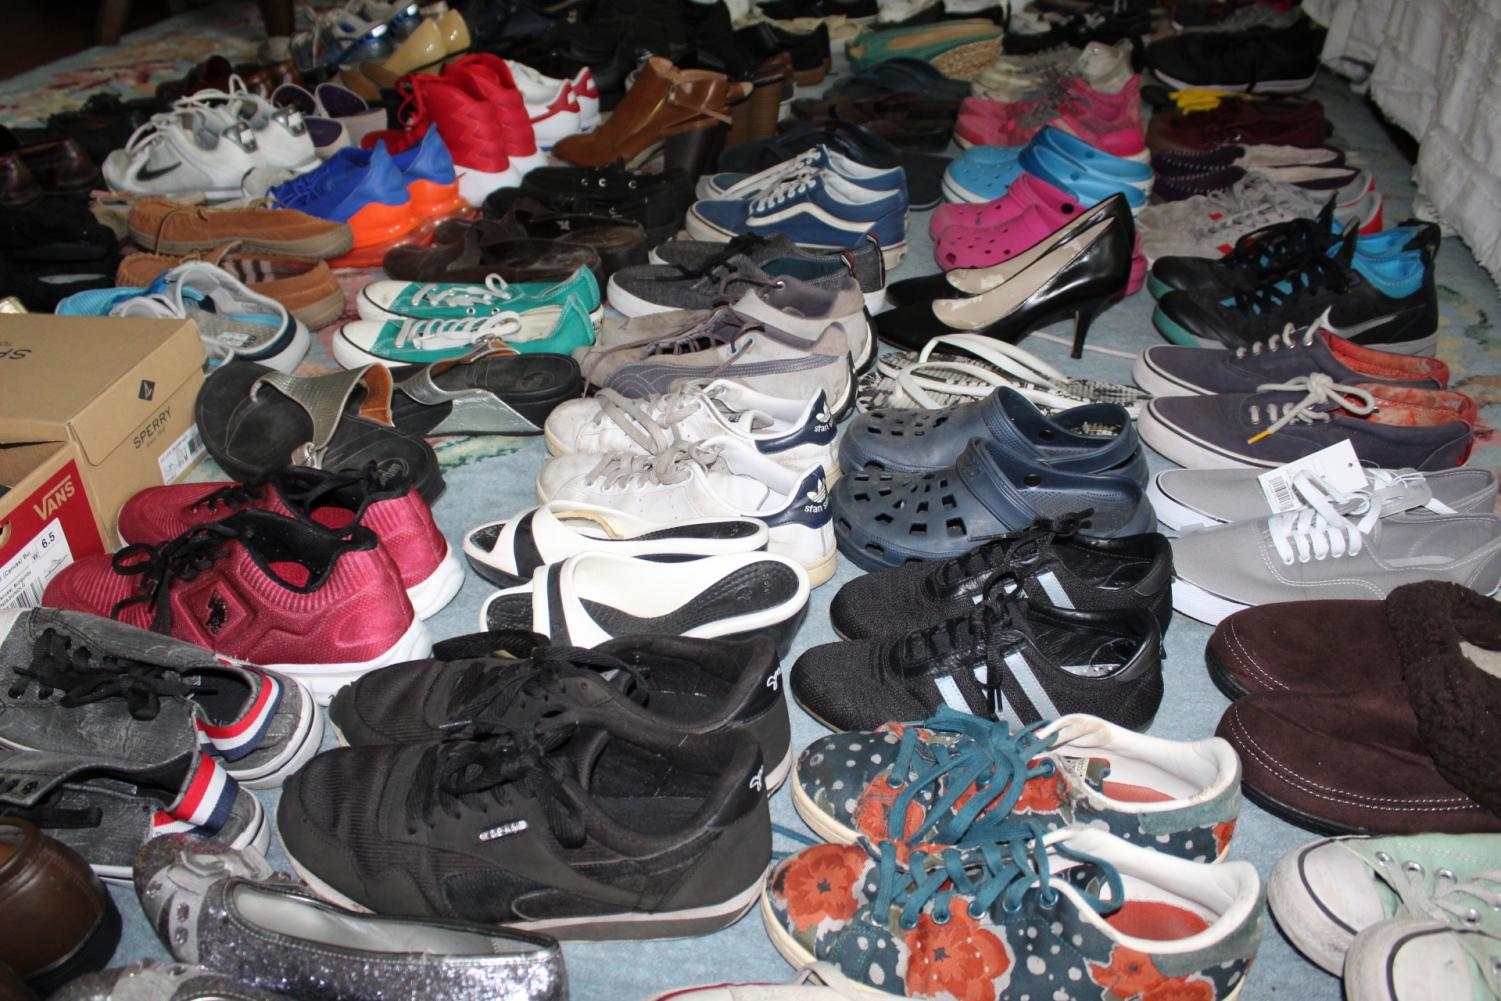 Horton's diligence allowed for 67 pairs of shoes to be collected in her most recent shoe drive.